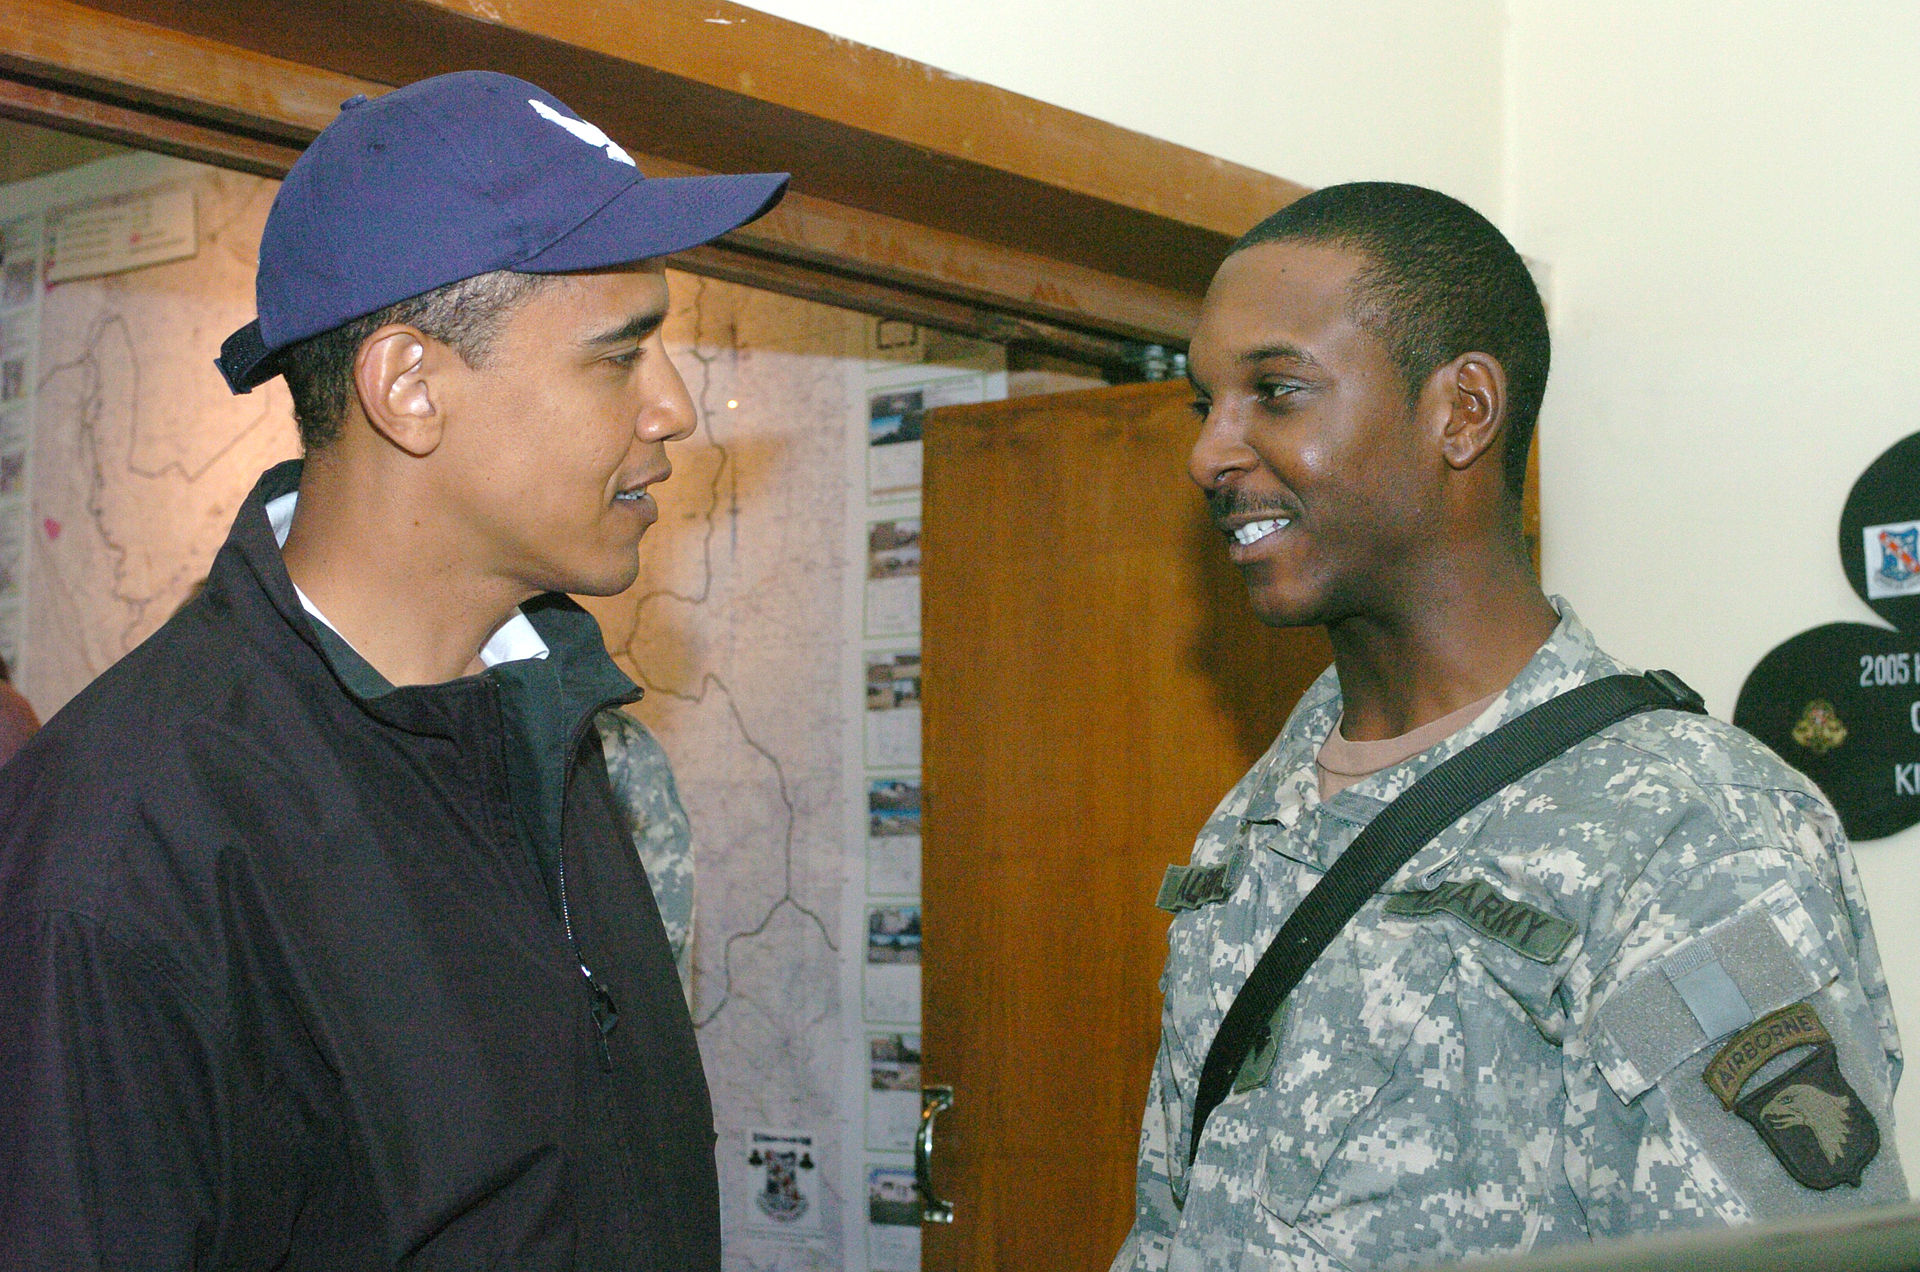 Obama speaking with a soldier stationed in Iraq, 2006